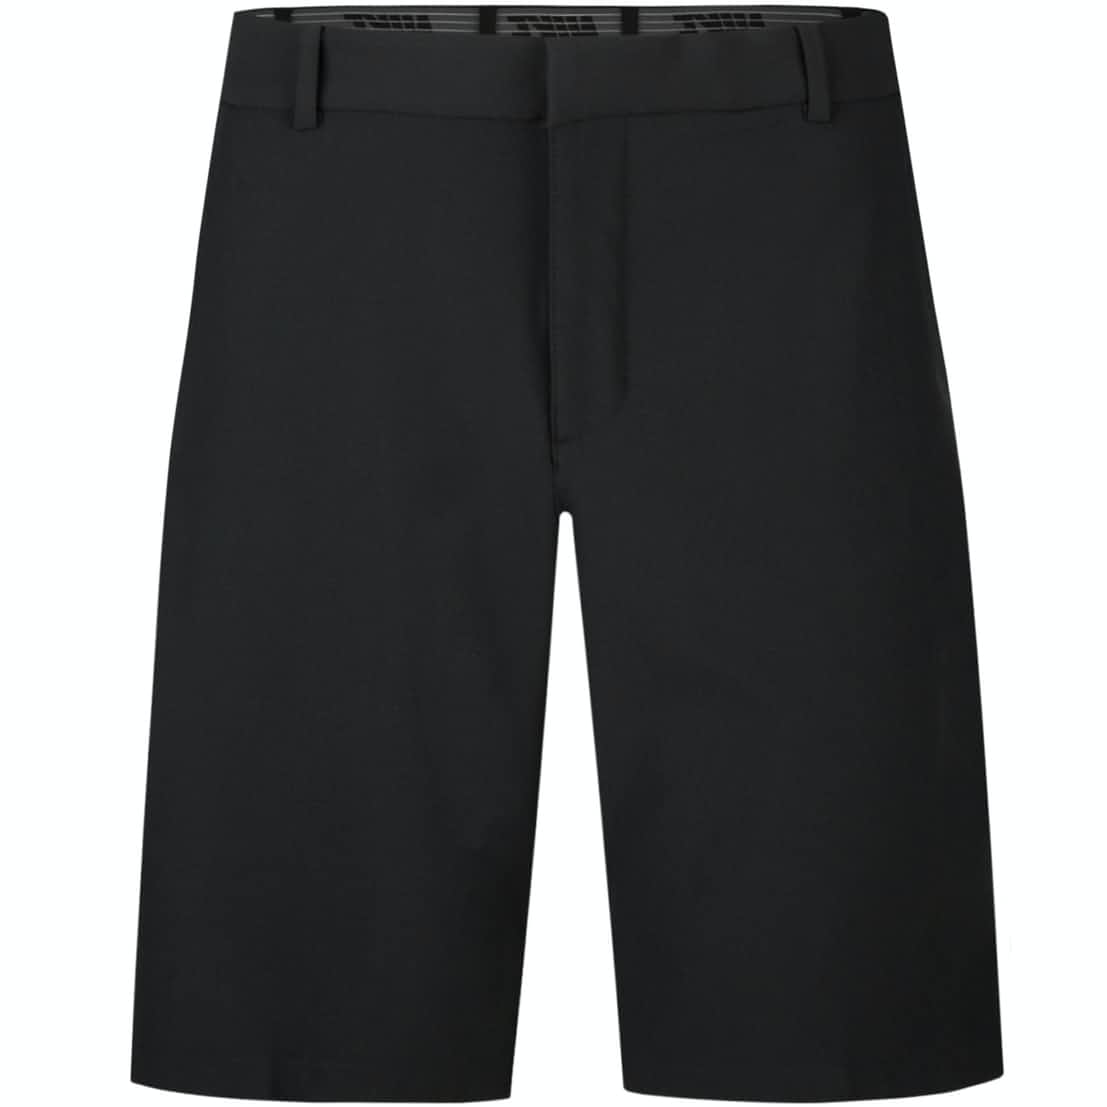 Flex Golf Shorts Black - AW19